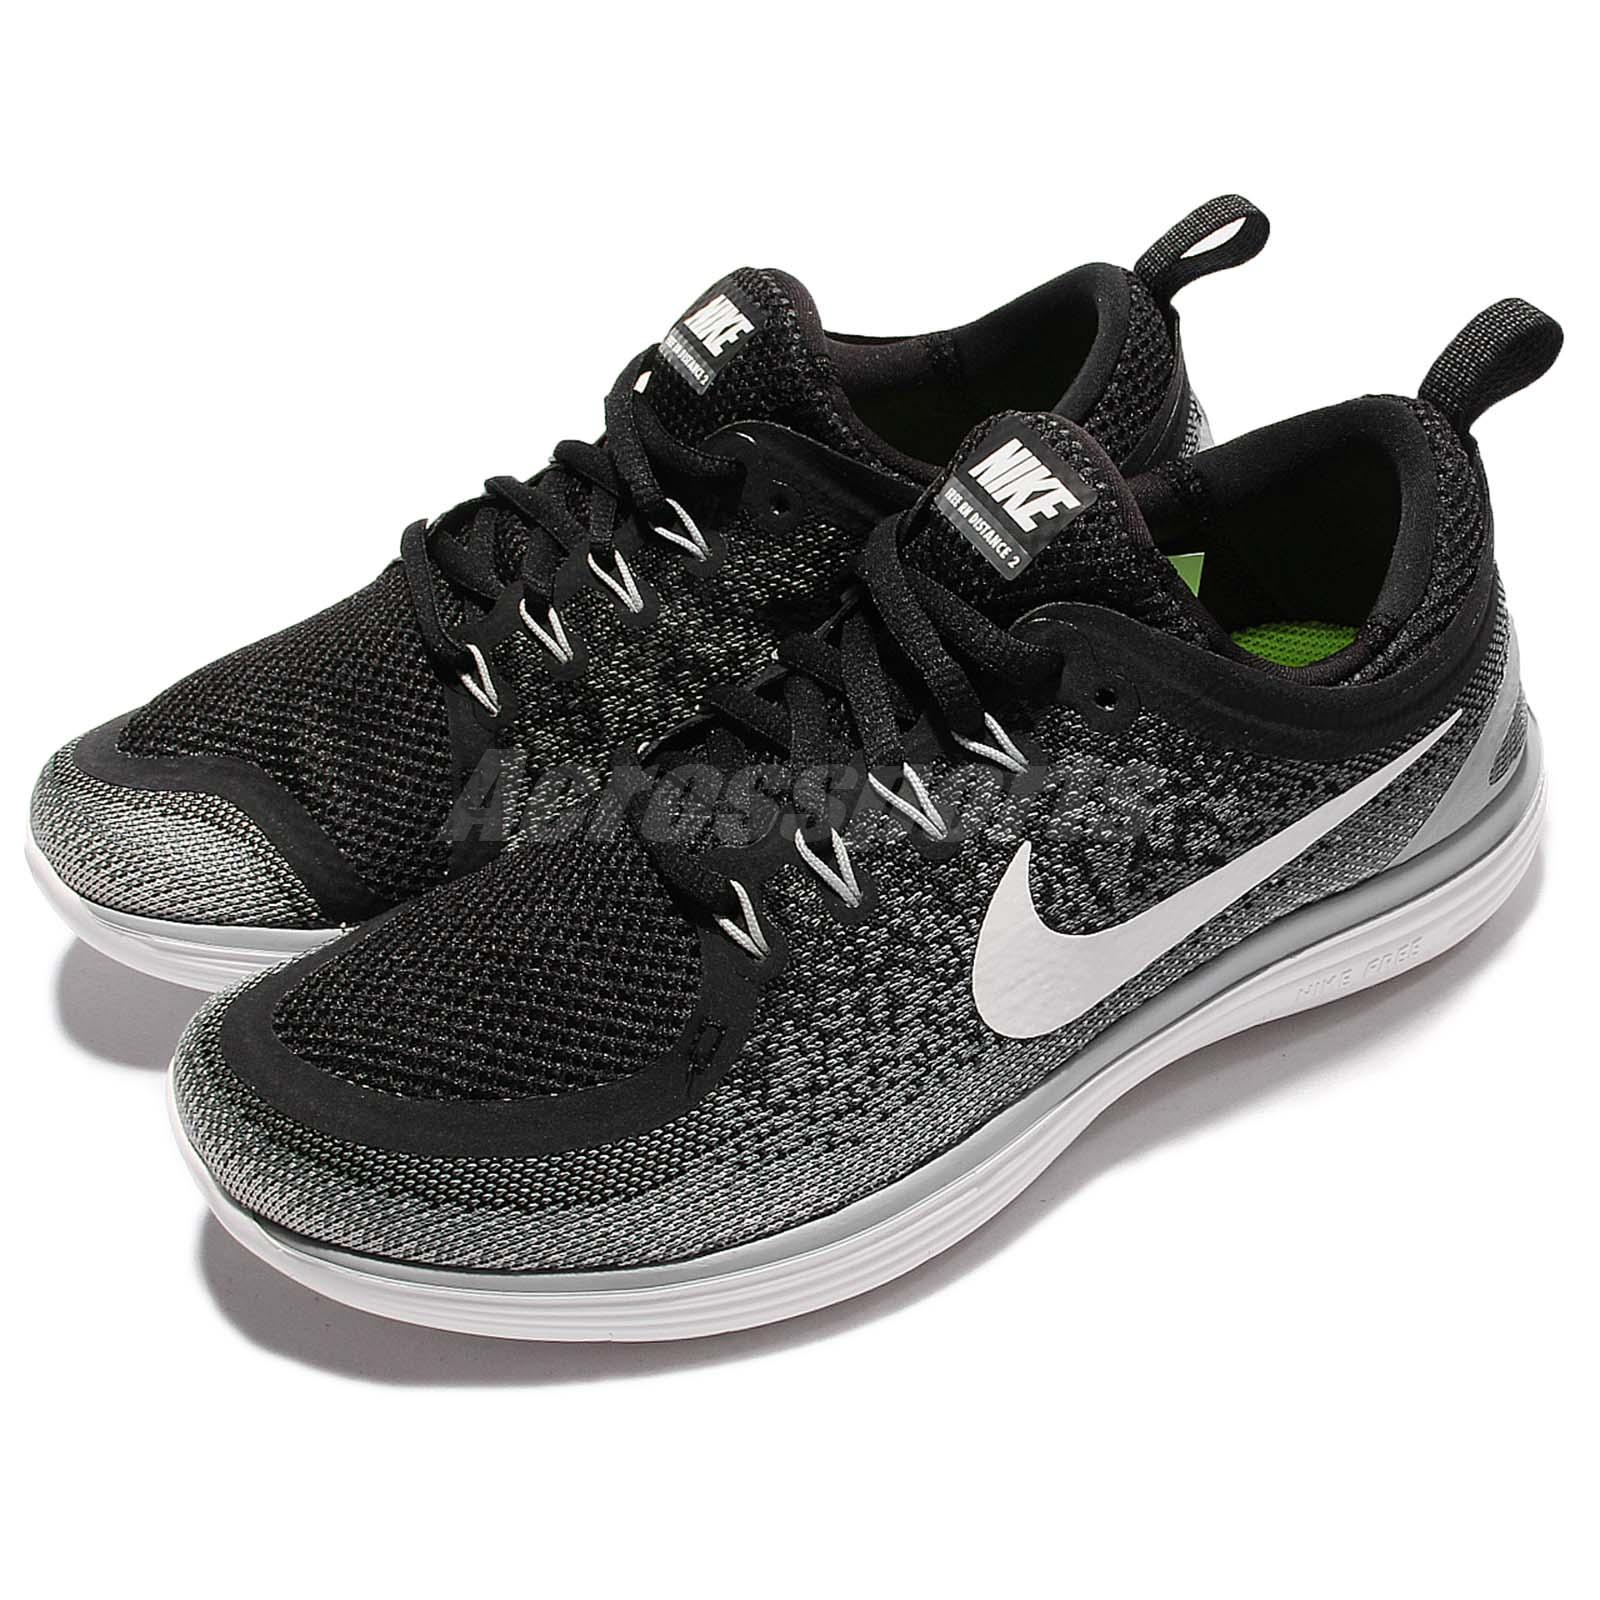 06de49a1819 Details about Wmns Nike Free RN Distance 2 Run Black White Women Running  Shoes 863776-001